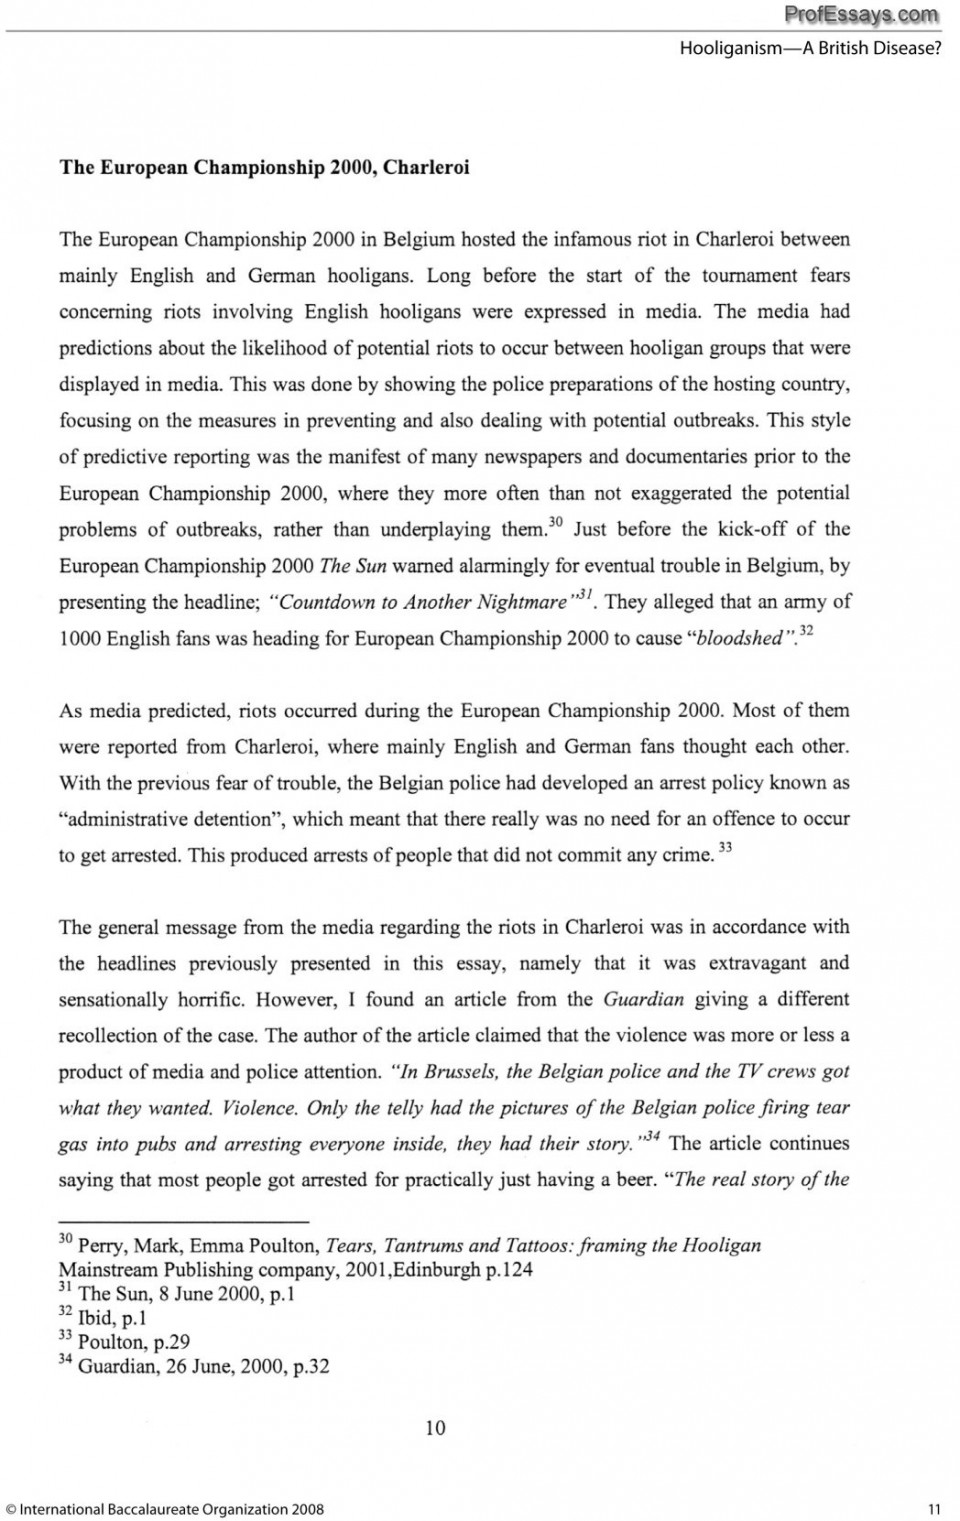 007 Writing Essay Papers Ama Format Tlc Five Ways To Make How Do You Write An Conclusion Ib Extended Free S Pdf I About Myself Introduction Sample We Wisdom Of The Head And Heart Fast On Best Example 960